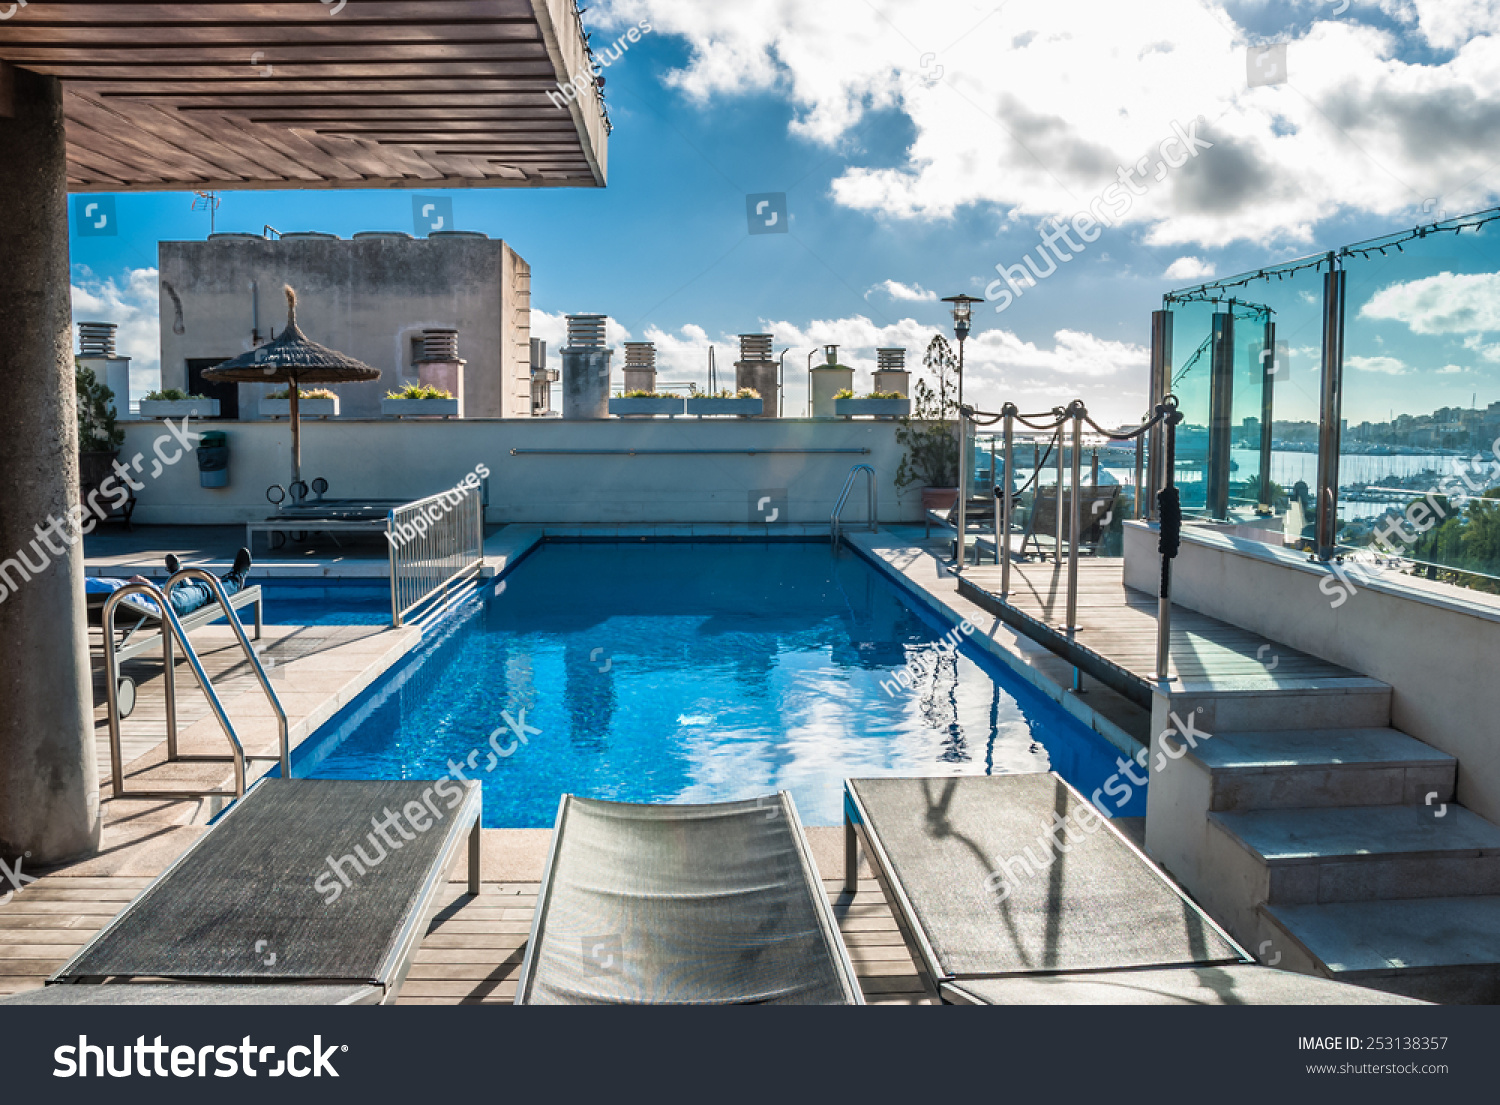 Architectural Swimming Pool At Building Rooftop In Palma